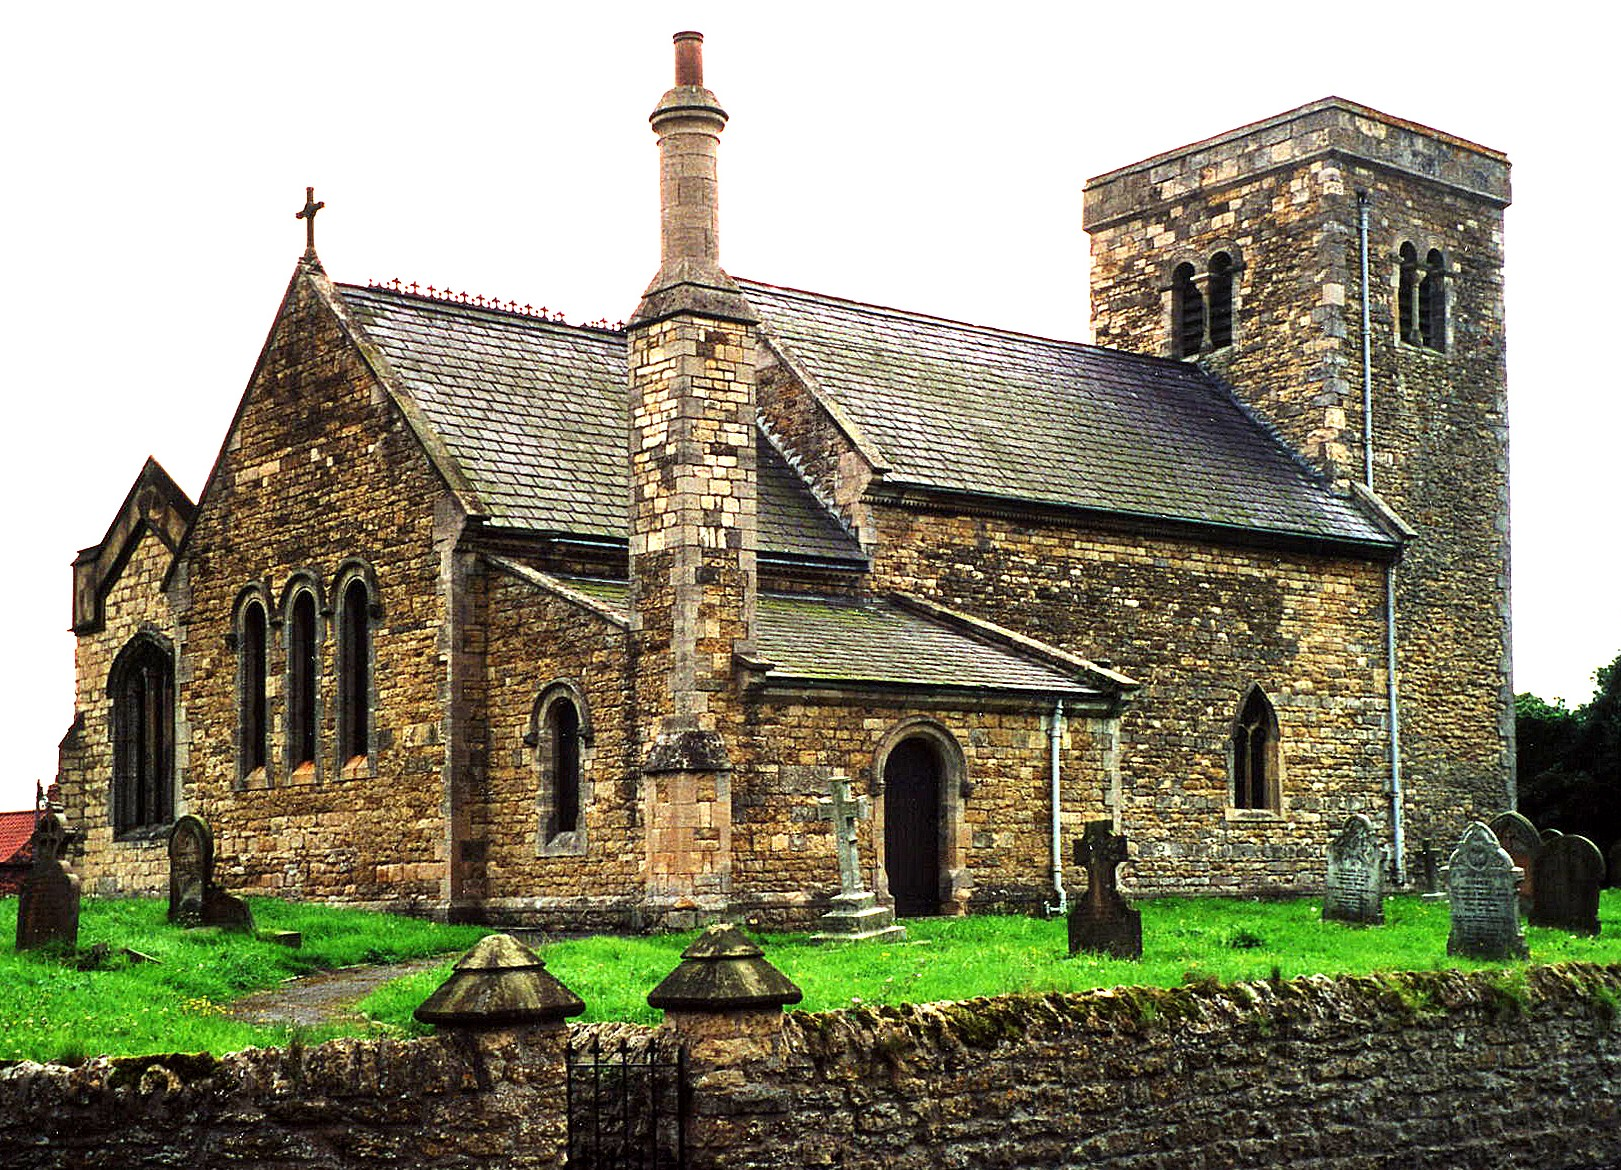 St. George and St. Lawrence Church